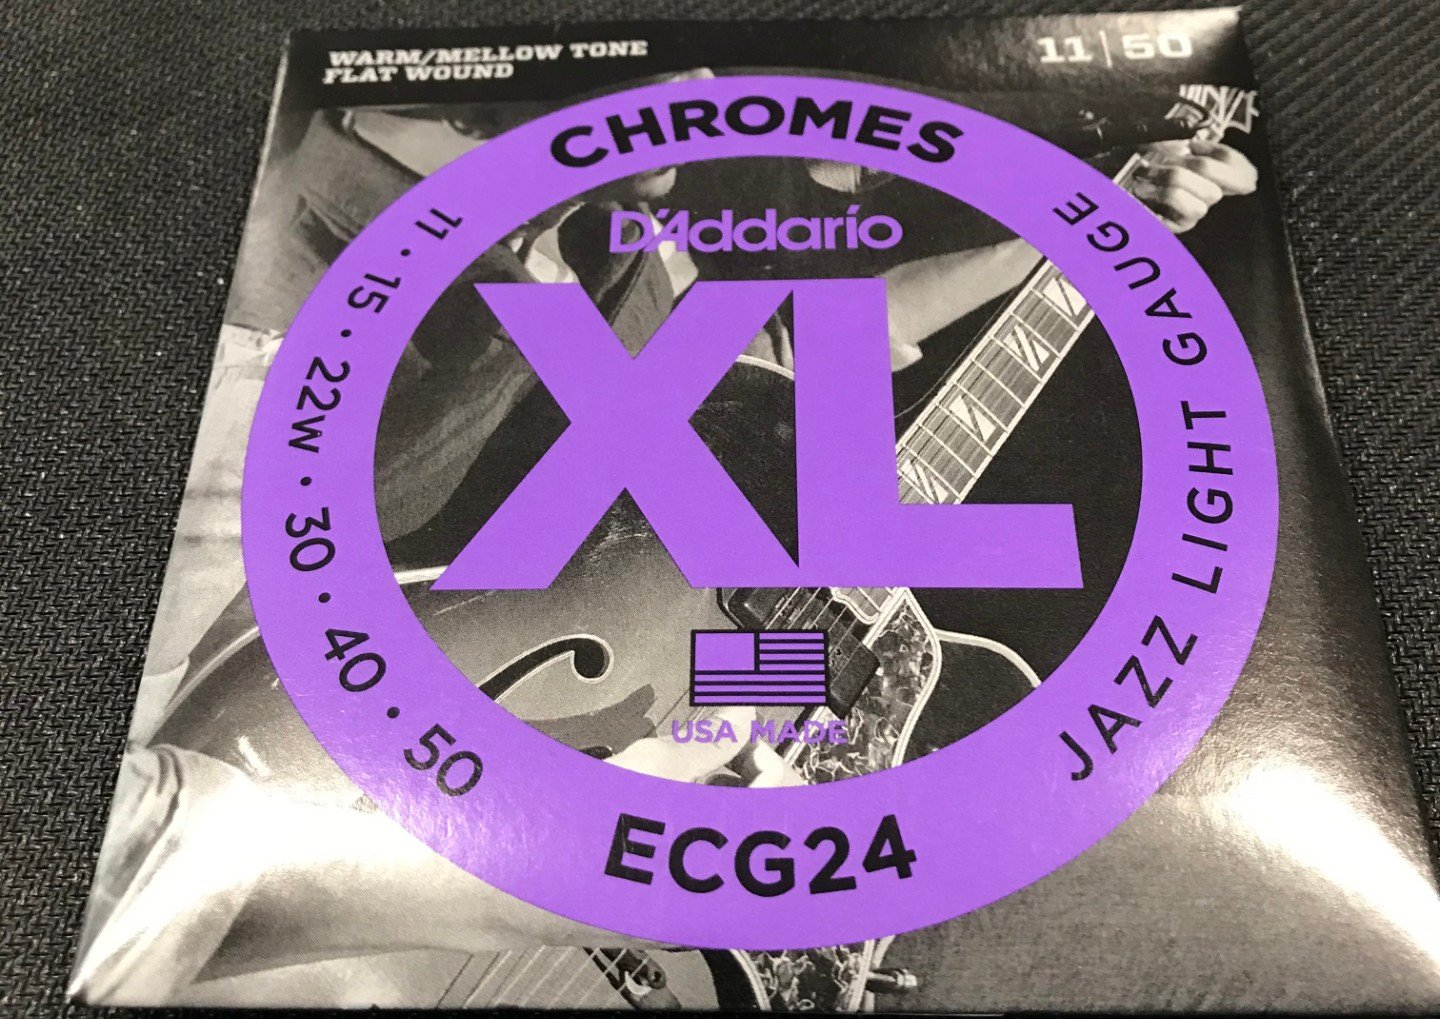 D'addario ECG24 Chrome flatwound Jazz light gauge 11-50